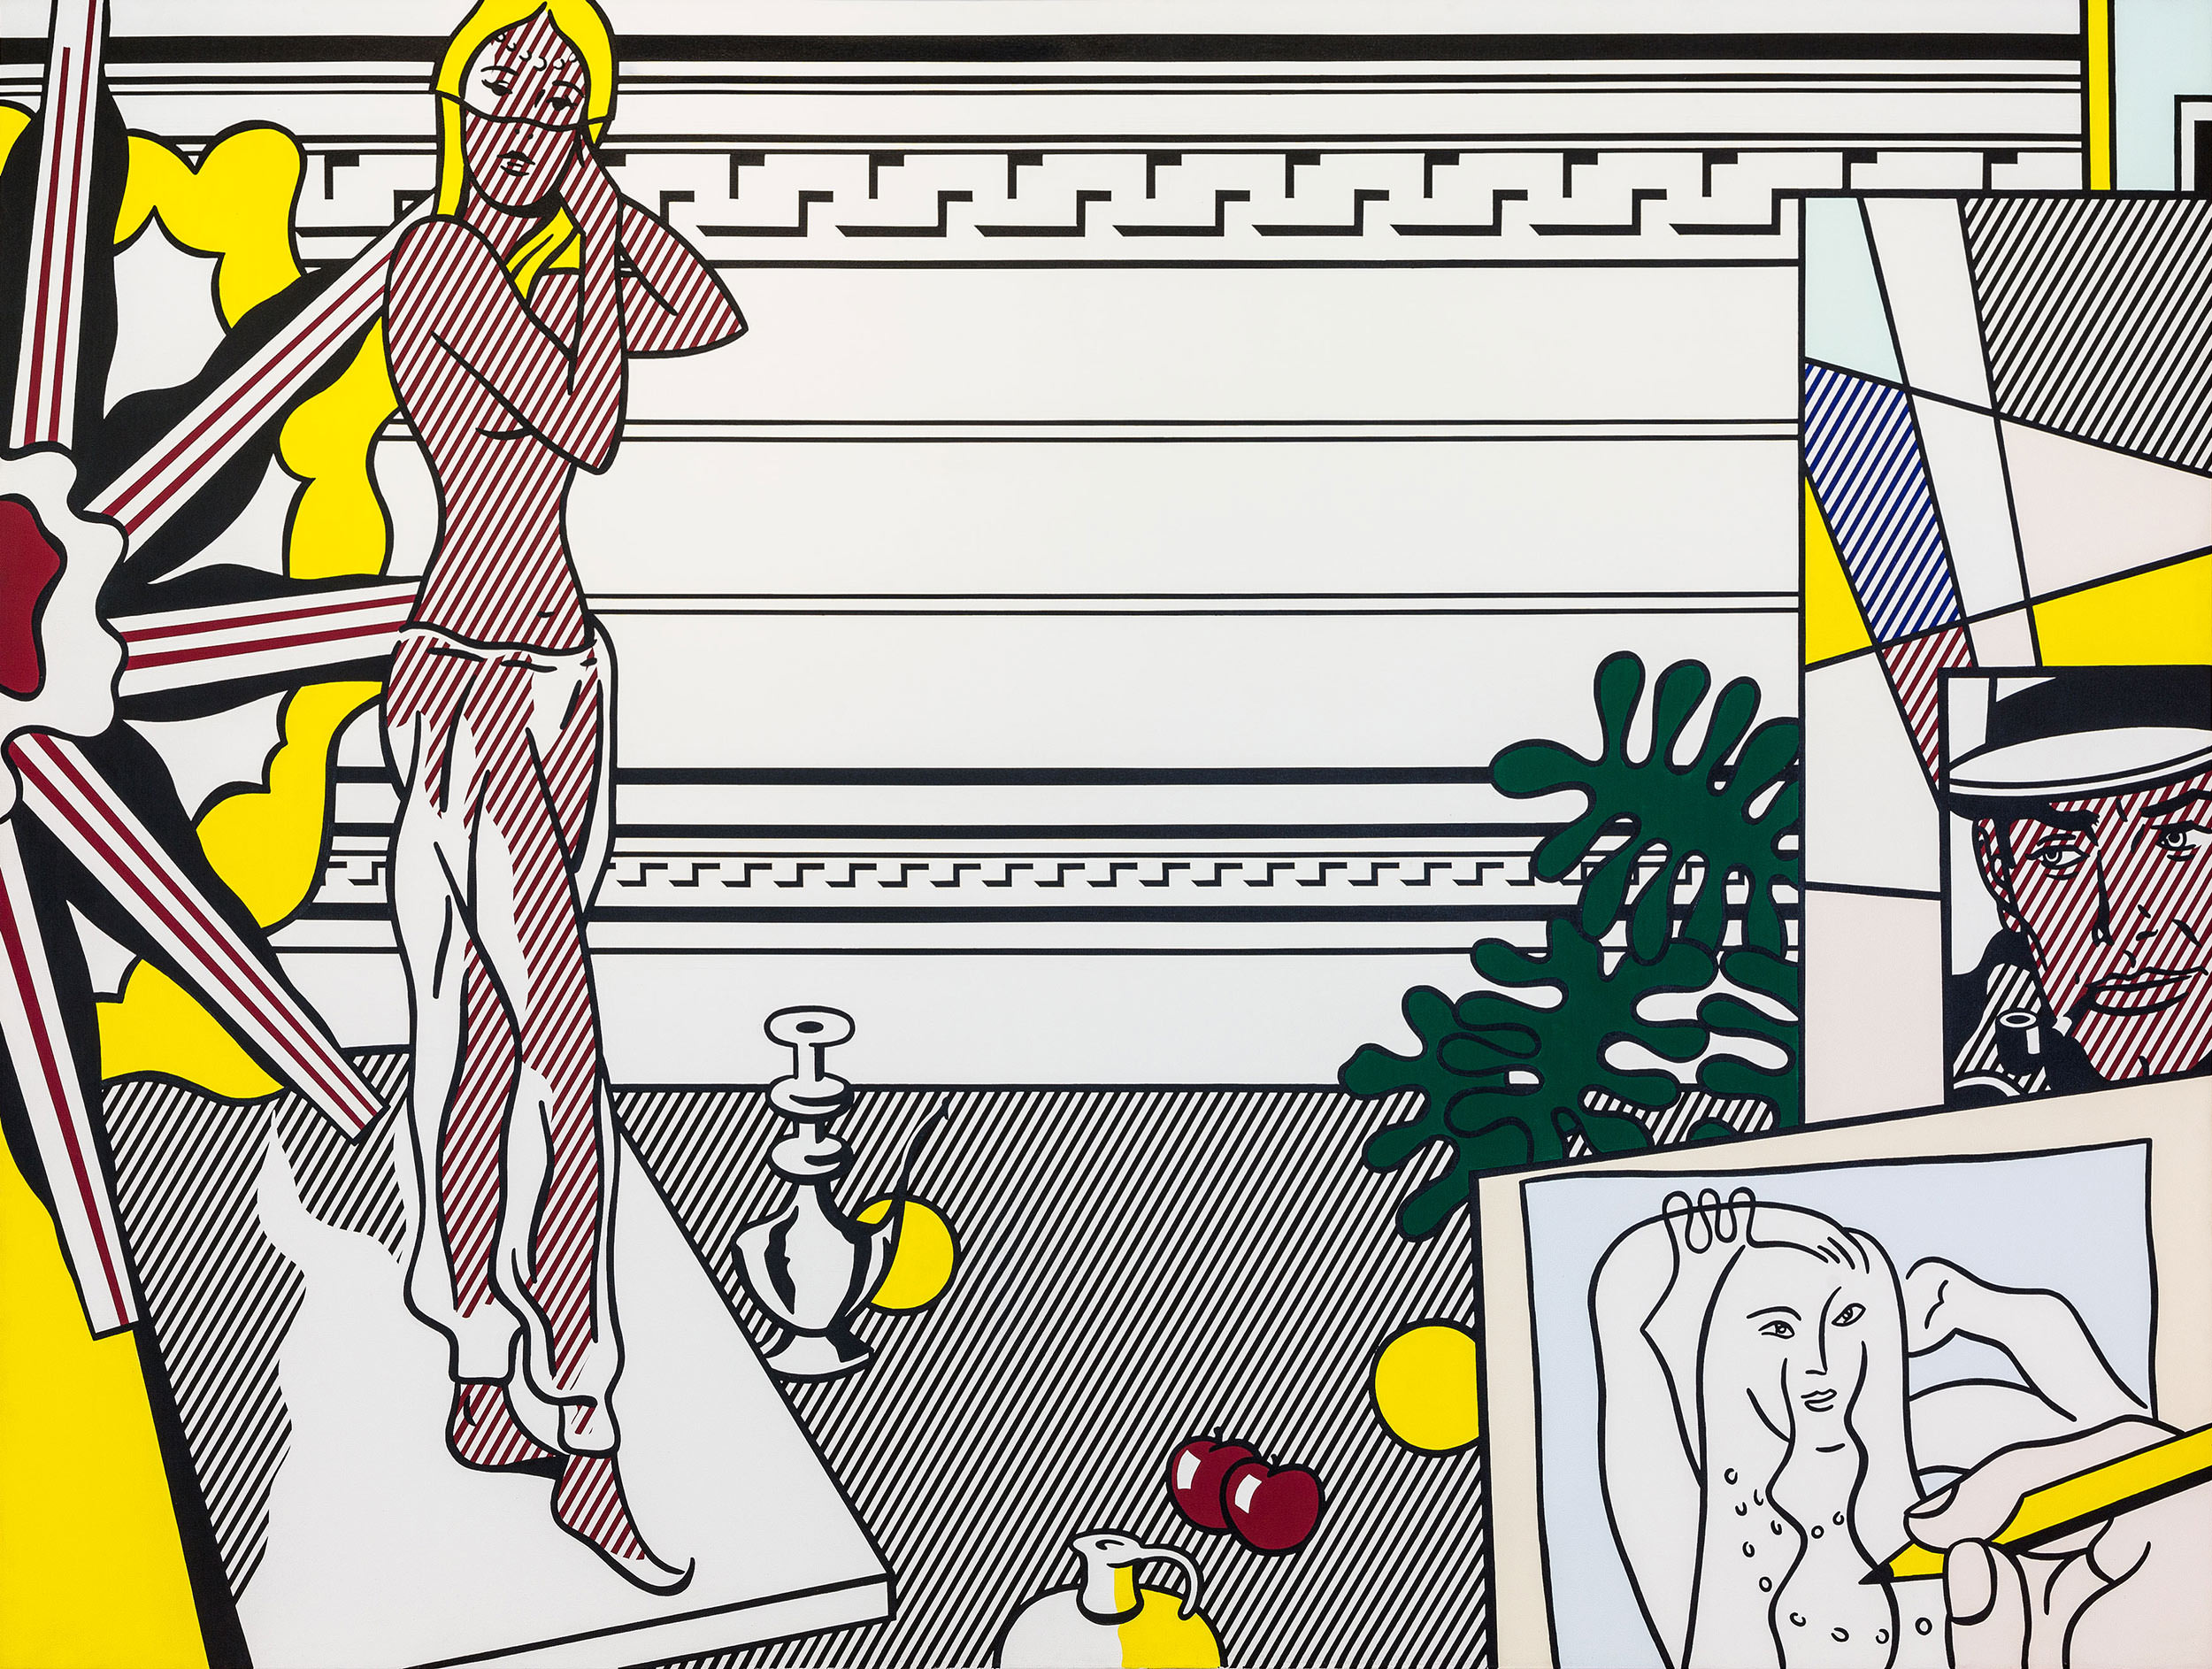 Roy Lichtenstein, Artist's Studio with Model, 1974. Oil and Magna on canvas. Collection of Irma & Norman Braman.